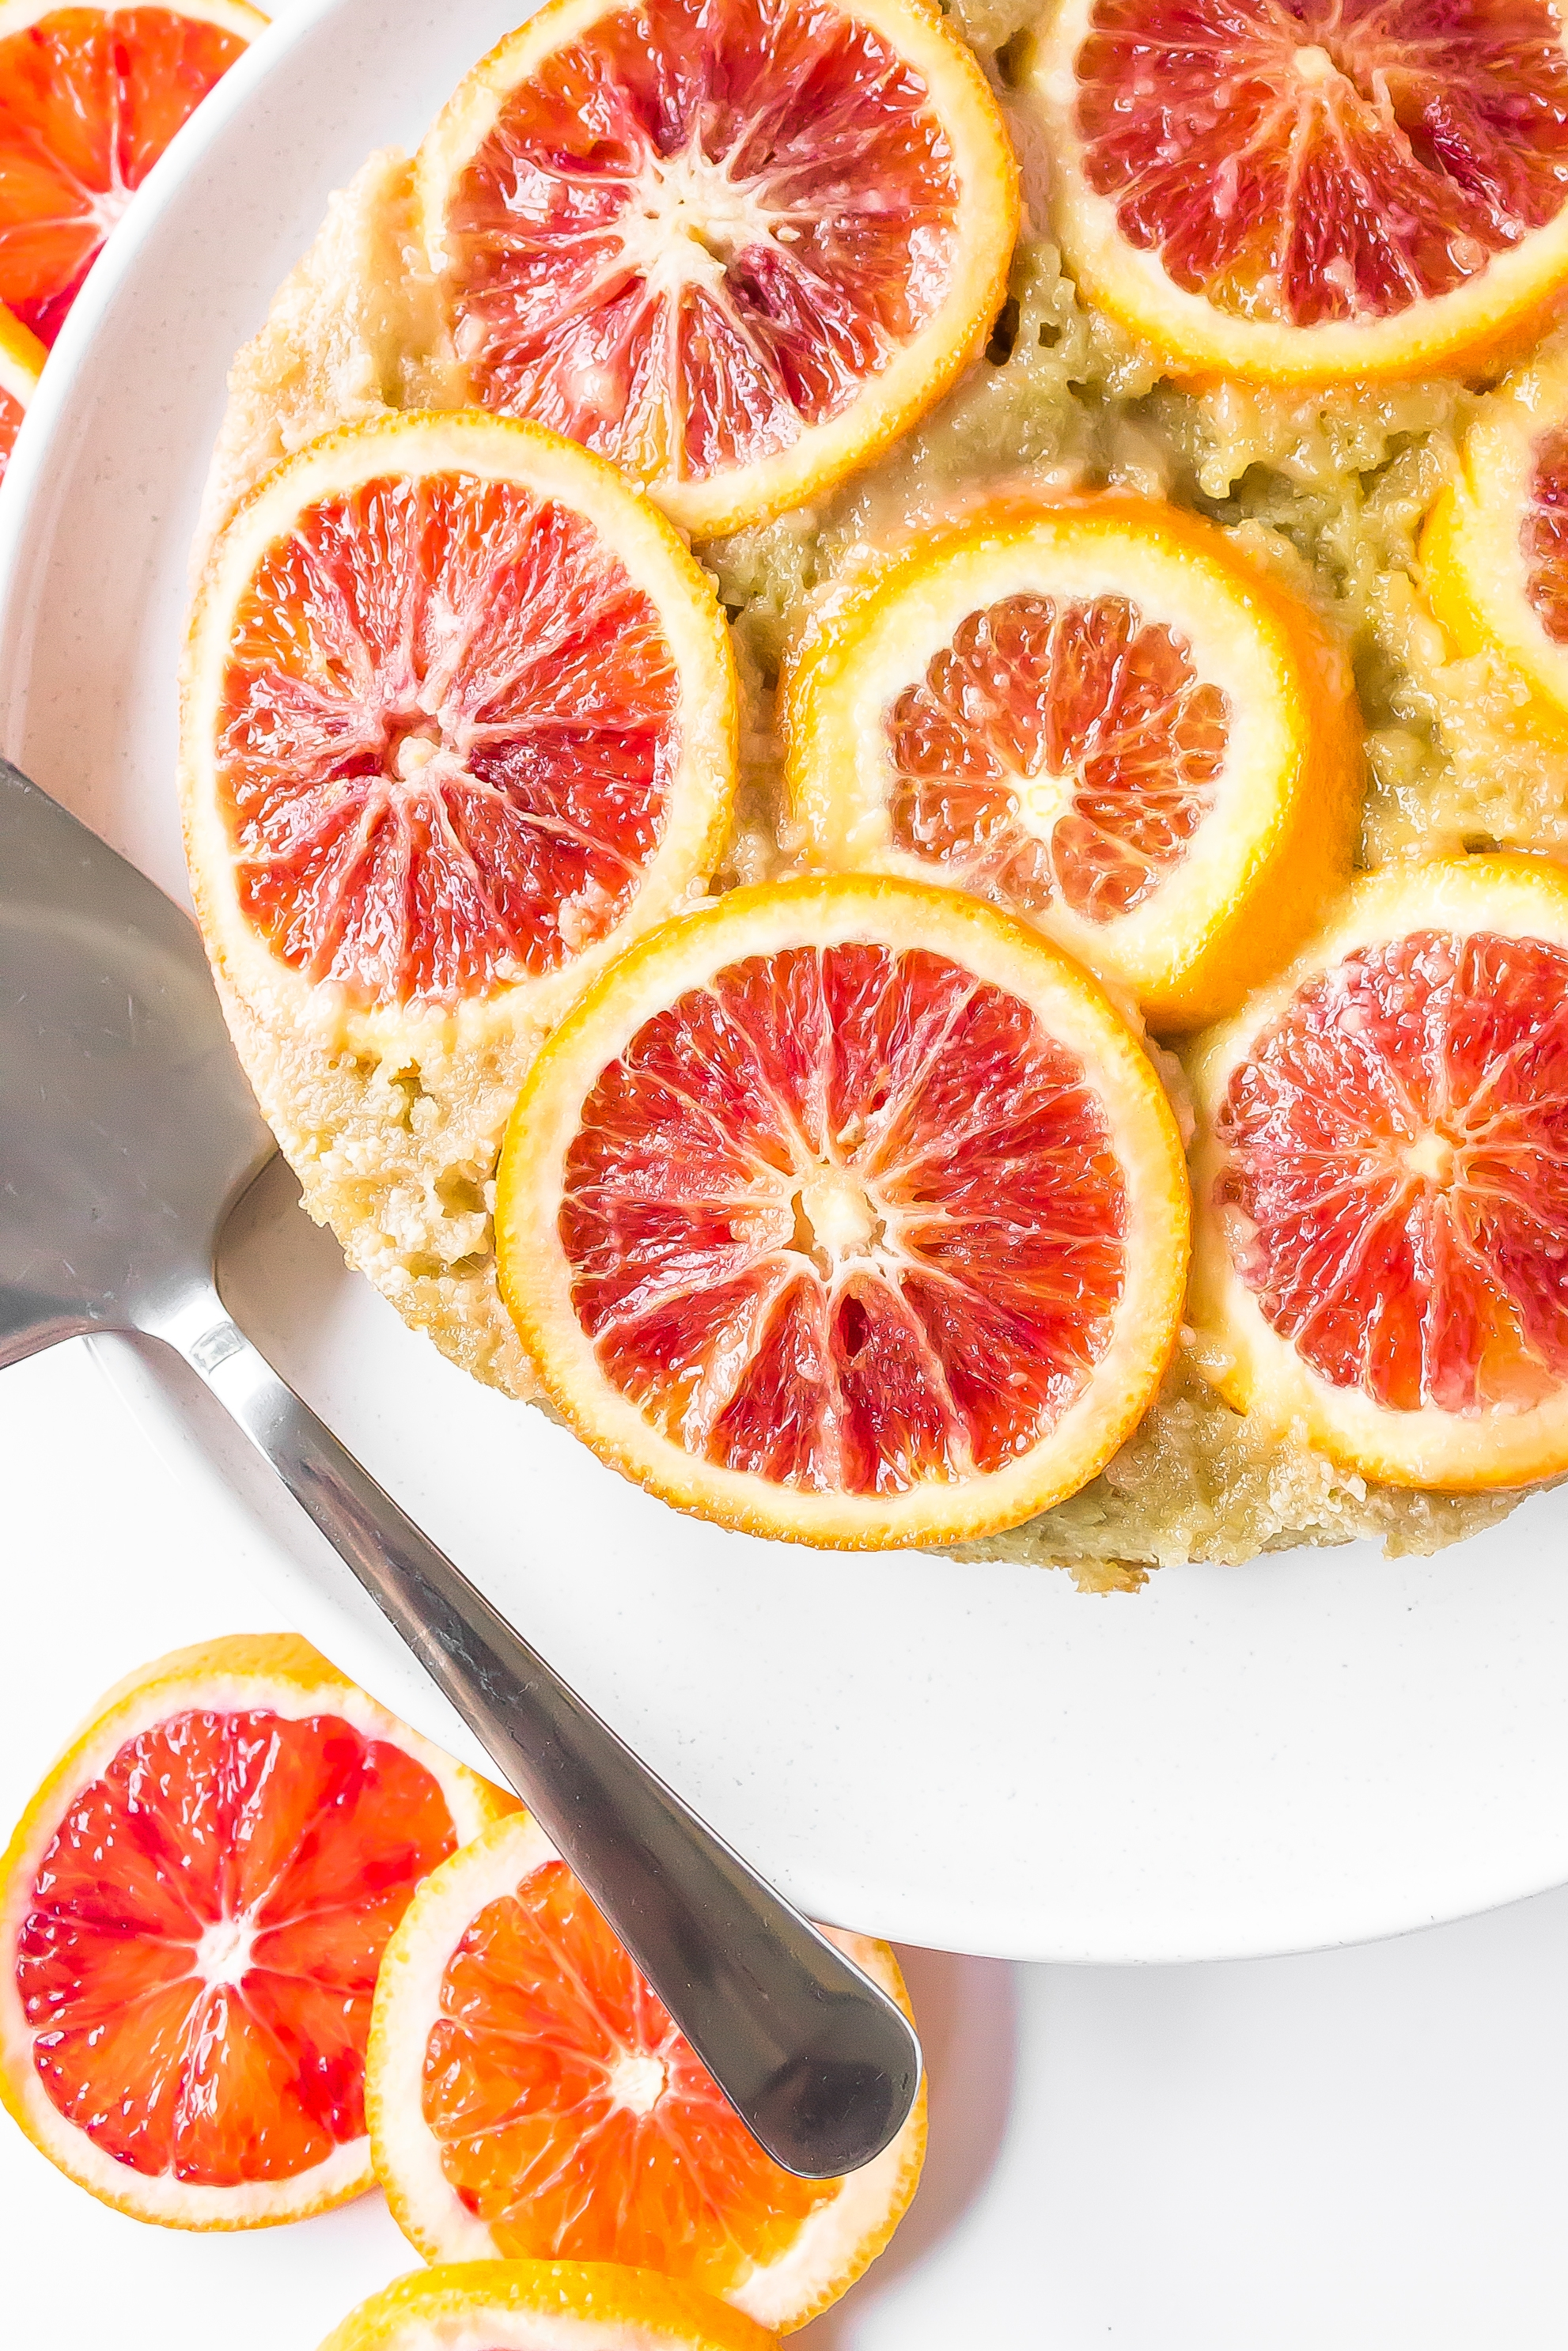 Blood Orange Upside Down Cake 2 70